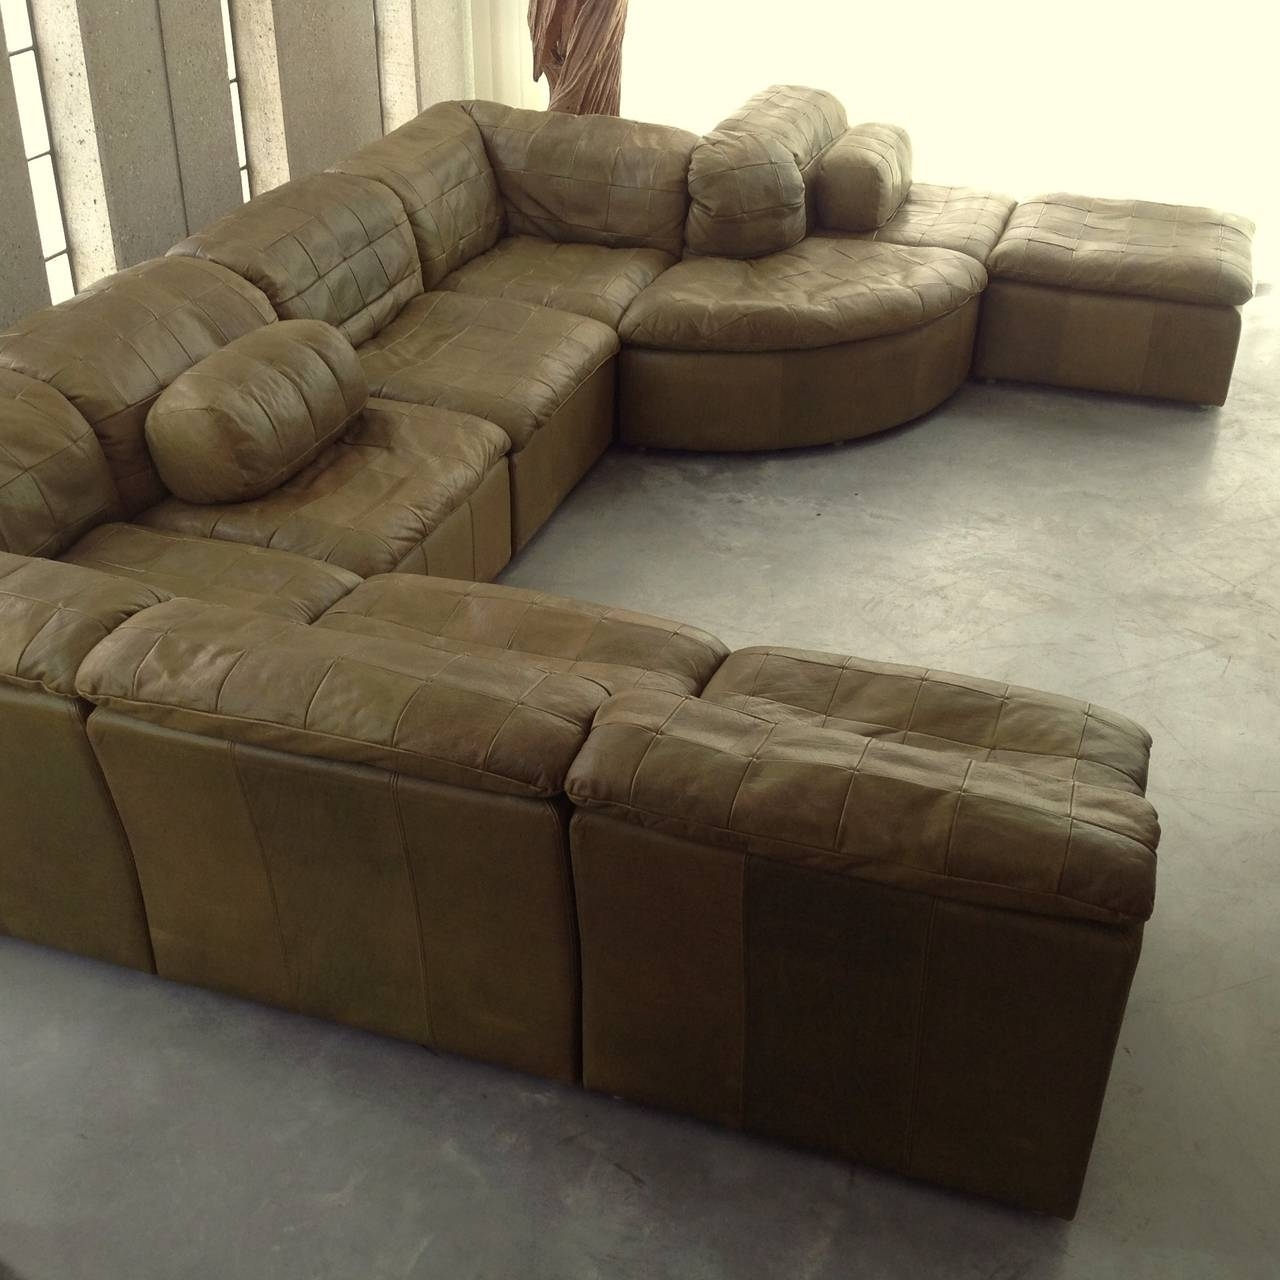 Tucson Sectional Sofas Intended For Current Trend Olive Green Sectional Sofa 57 In Sectional Sofas Tucson With (View 17 of 20)